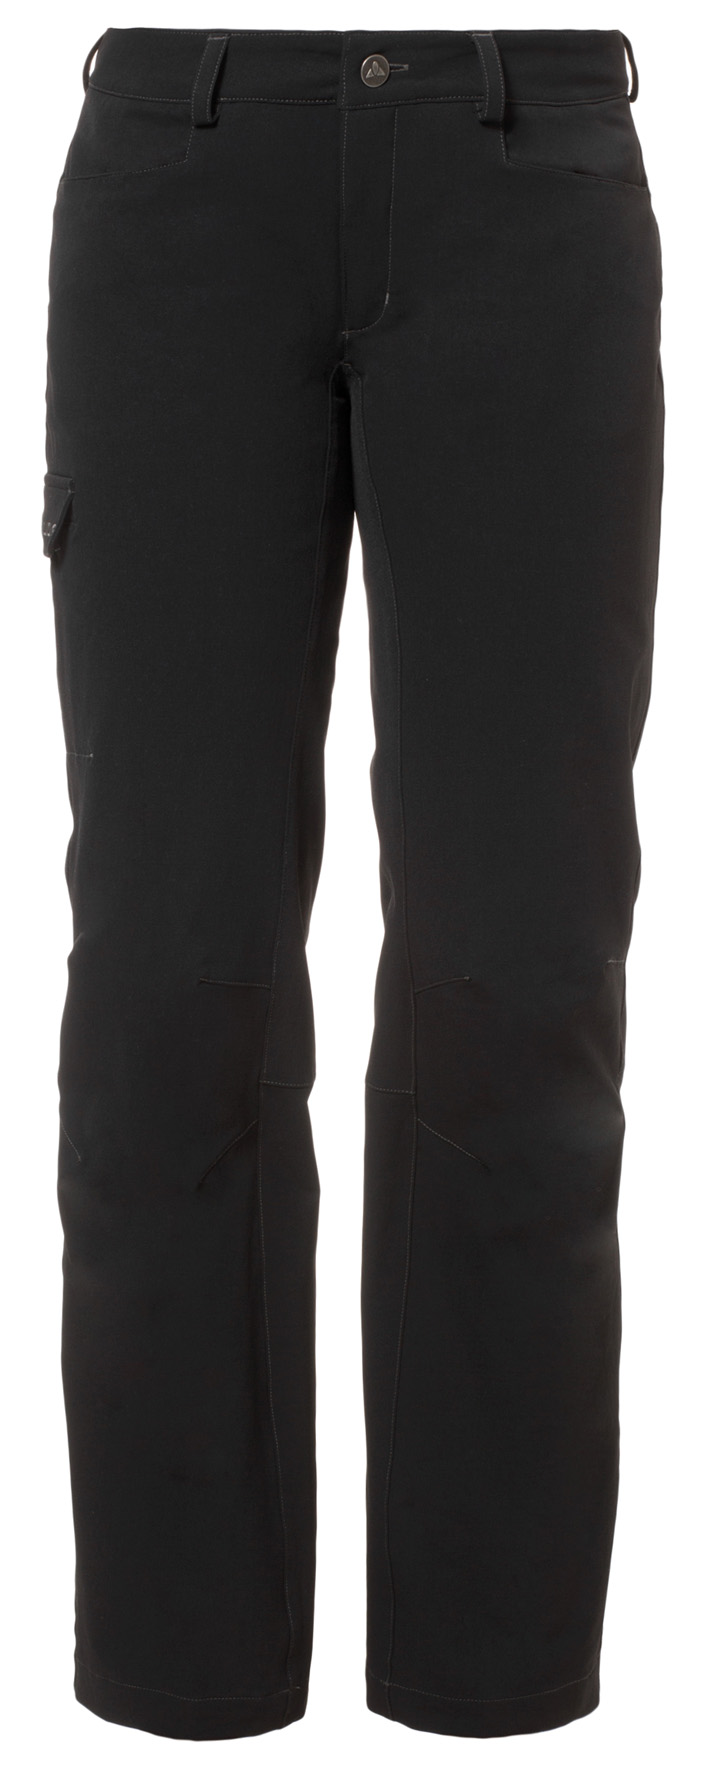 VAUDE Women´s Lauca Windproof Pants black Größe 36 - schneider-sports